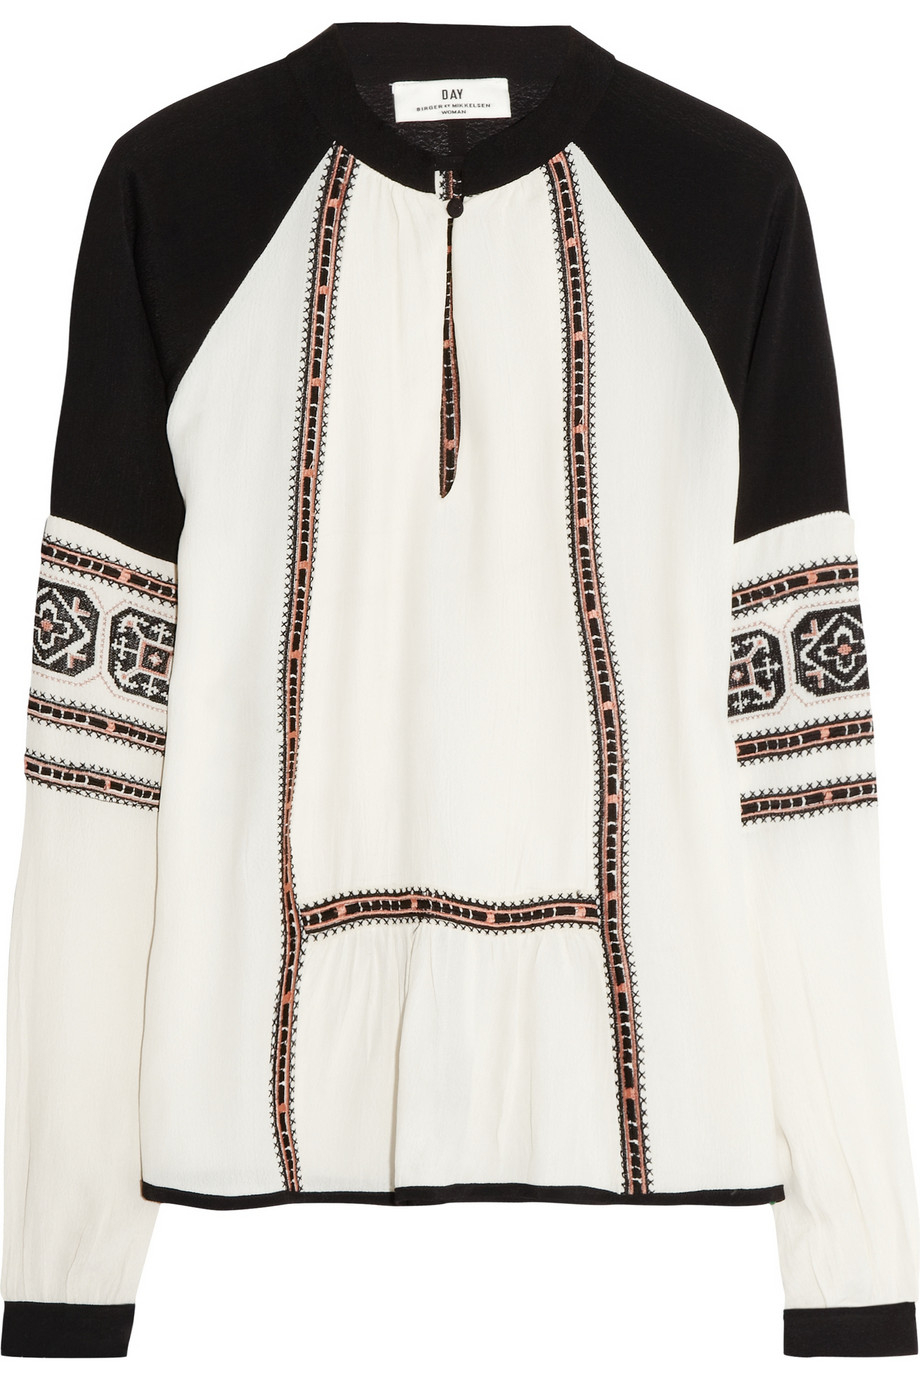 lyst day birger et mikkelsen folk embroidered crepe top in black. Black Bedroom Furniture Sets. Home Design Ideas